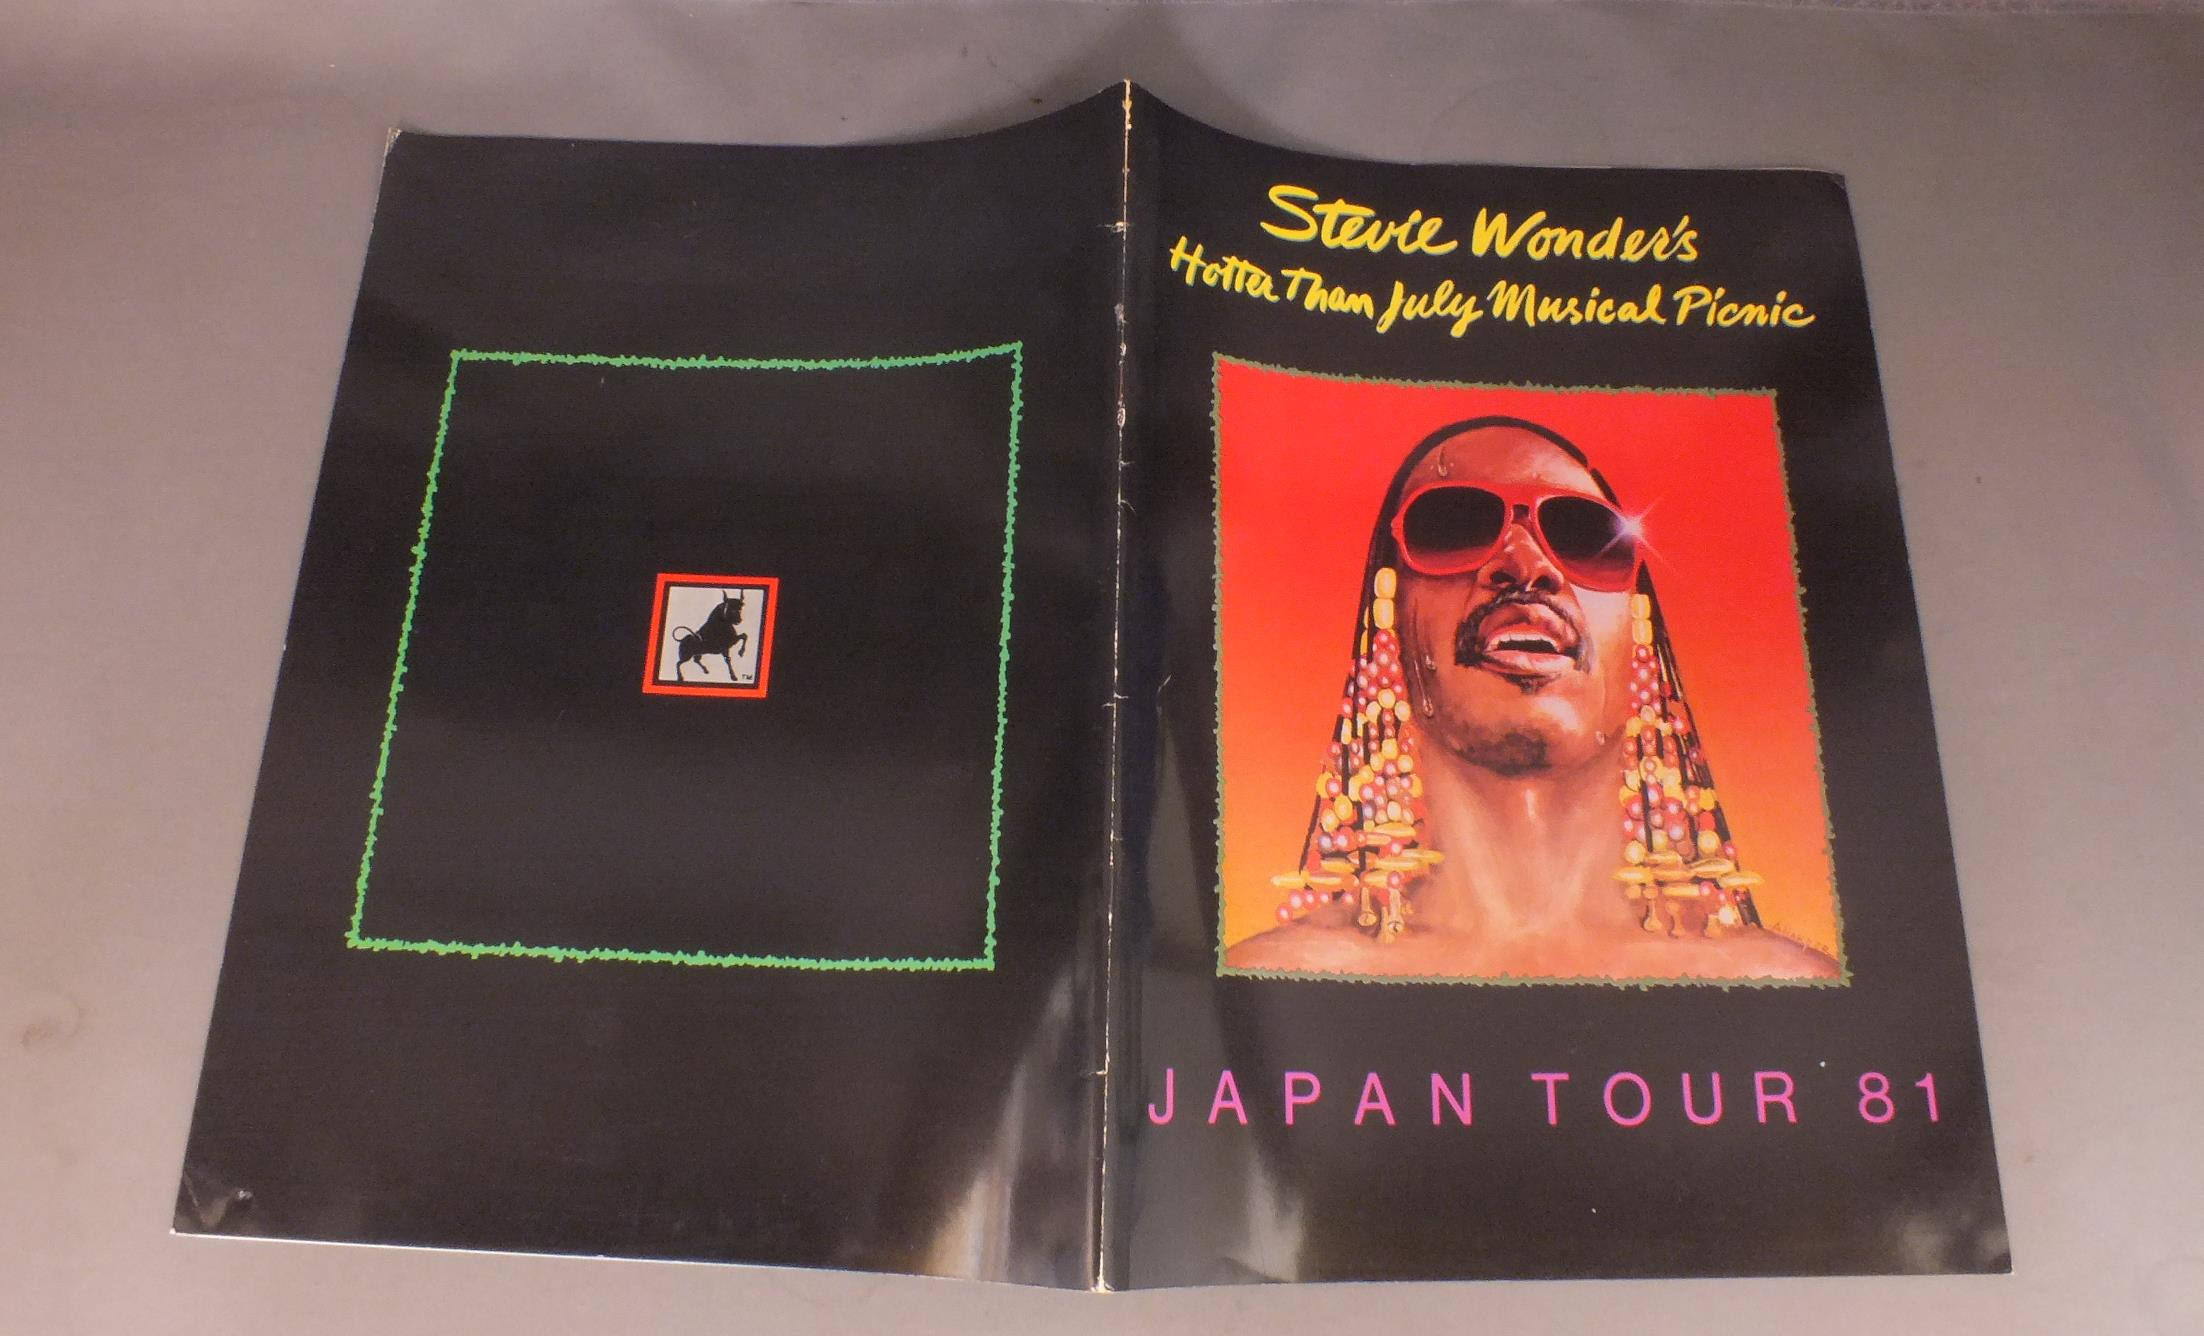 STEVIE WONDER - JAPAN TOUR `81 PROGRAM - Concert Program